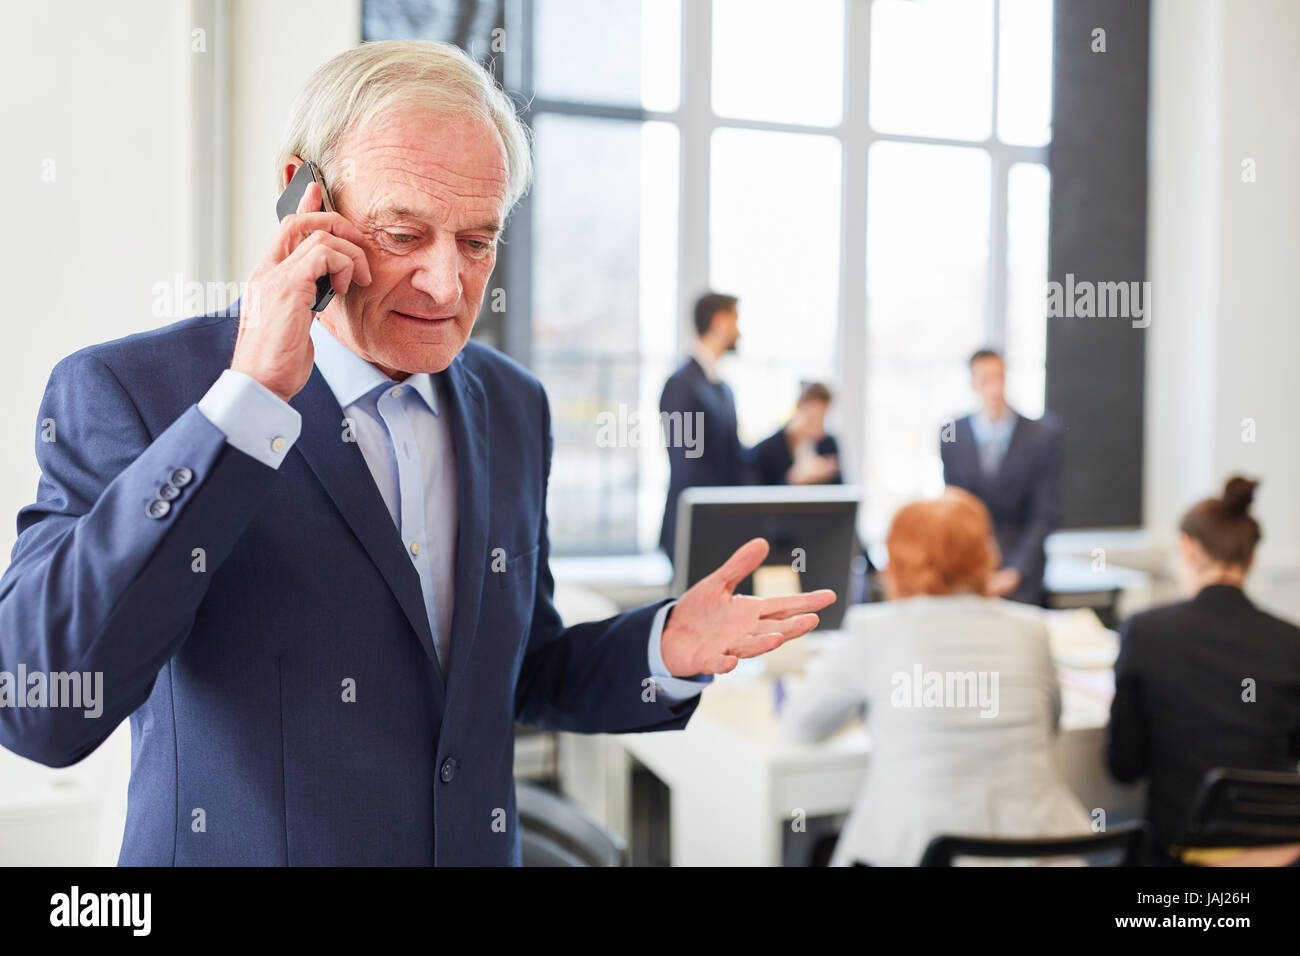 Senior as lawyer or consultant making call with smartphone - Stock Image